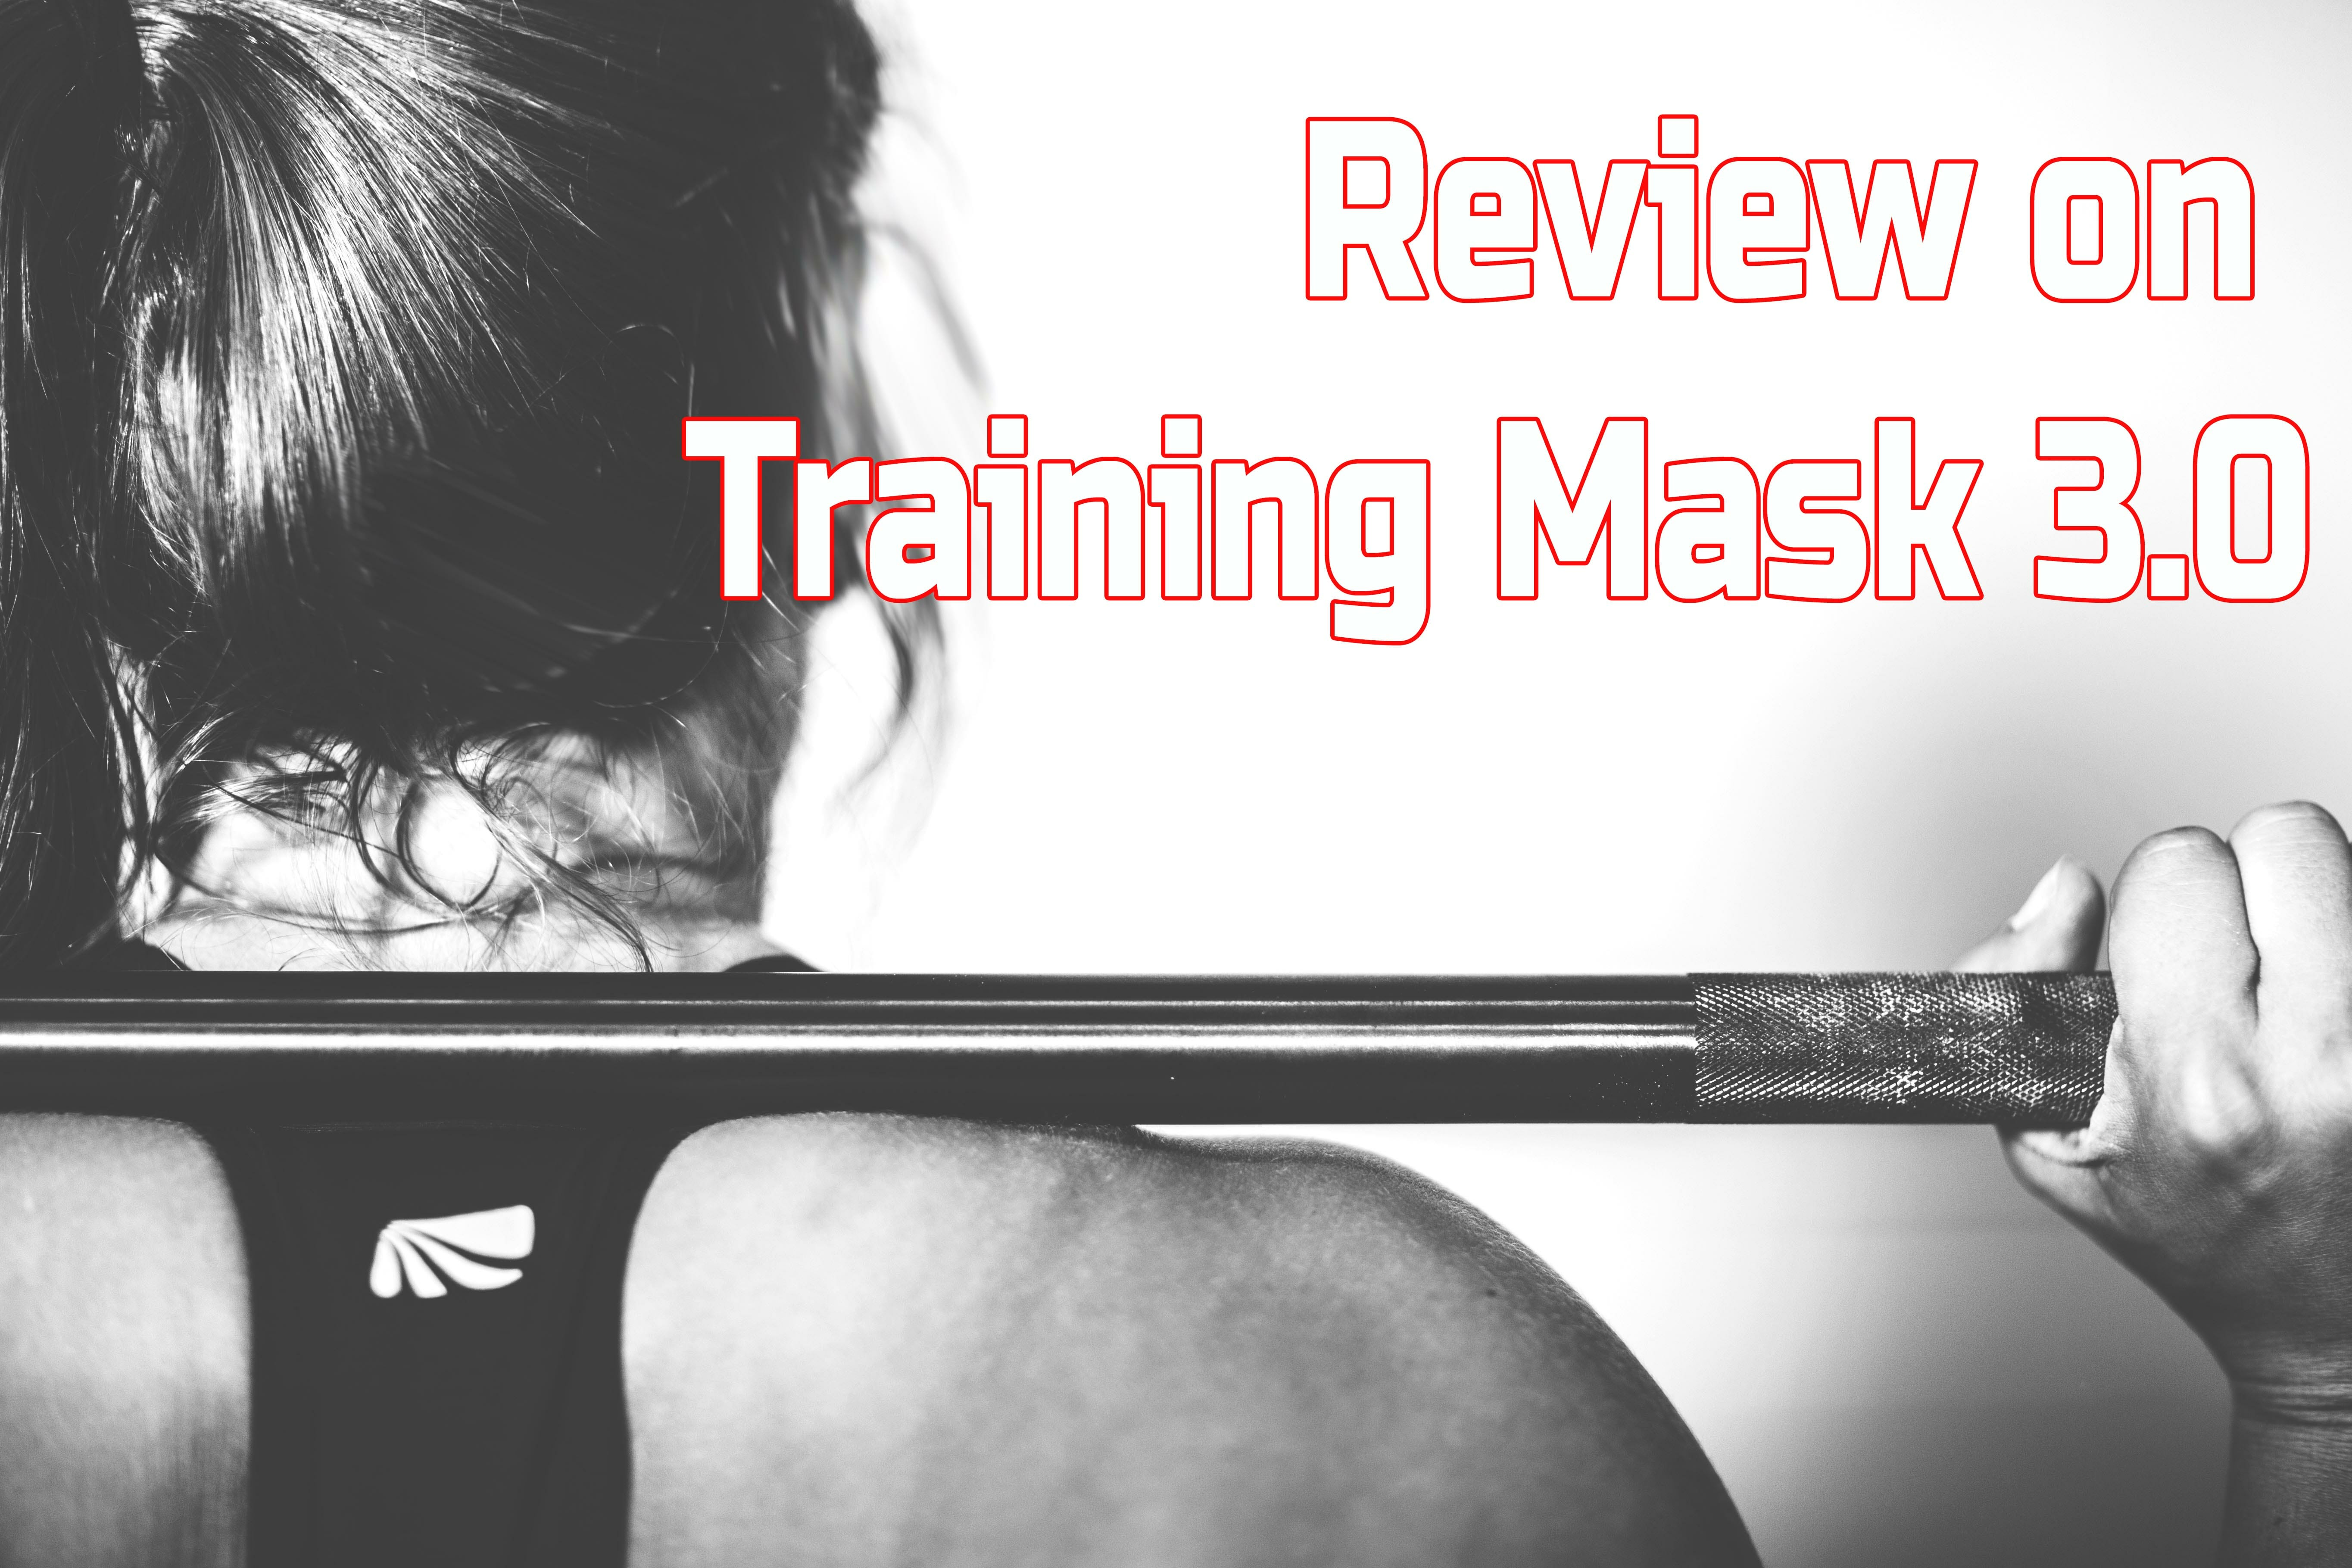 Training Mask 3.0 Review And Comparison